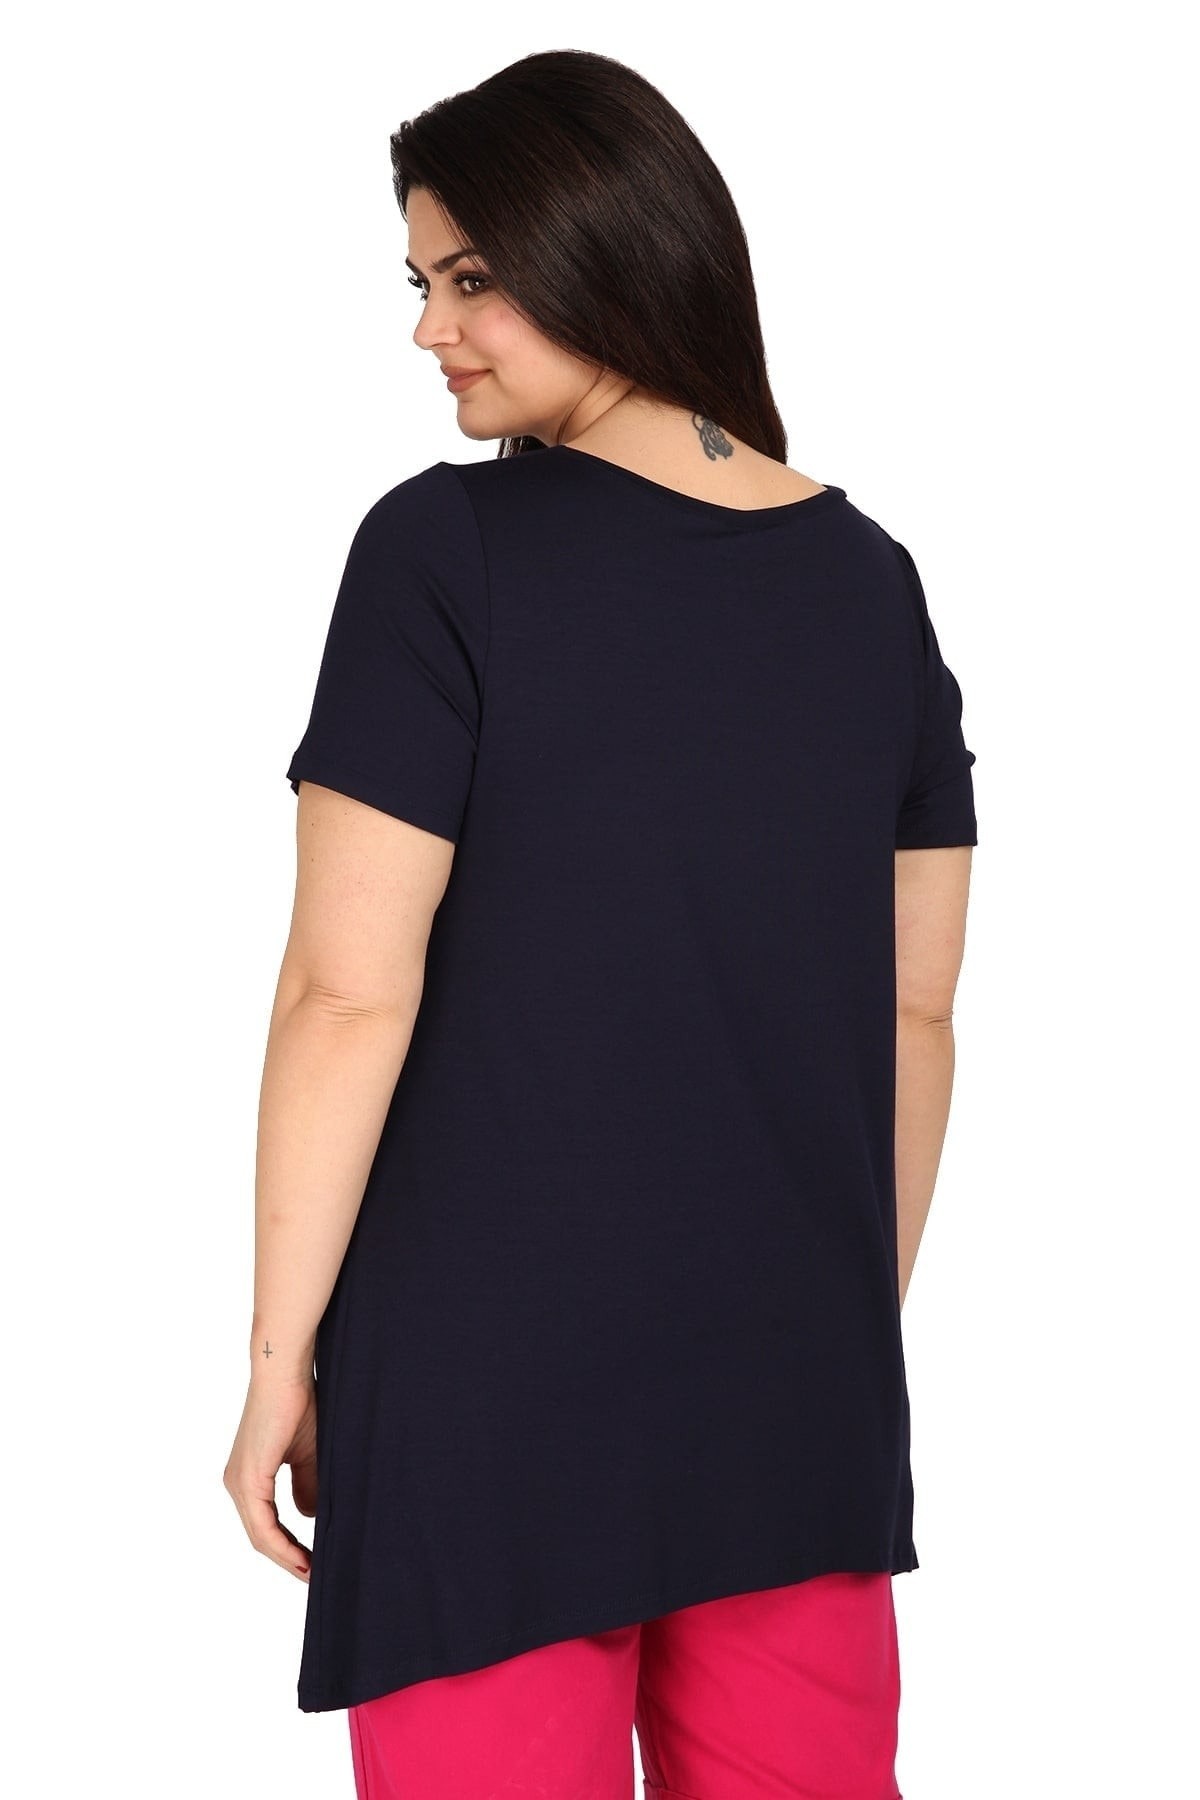 Blusa larga de viscosa